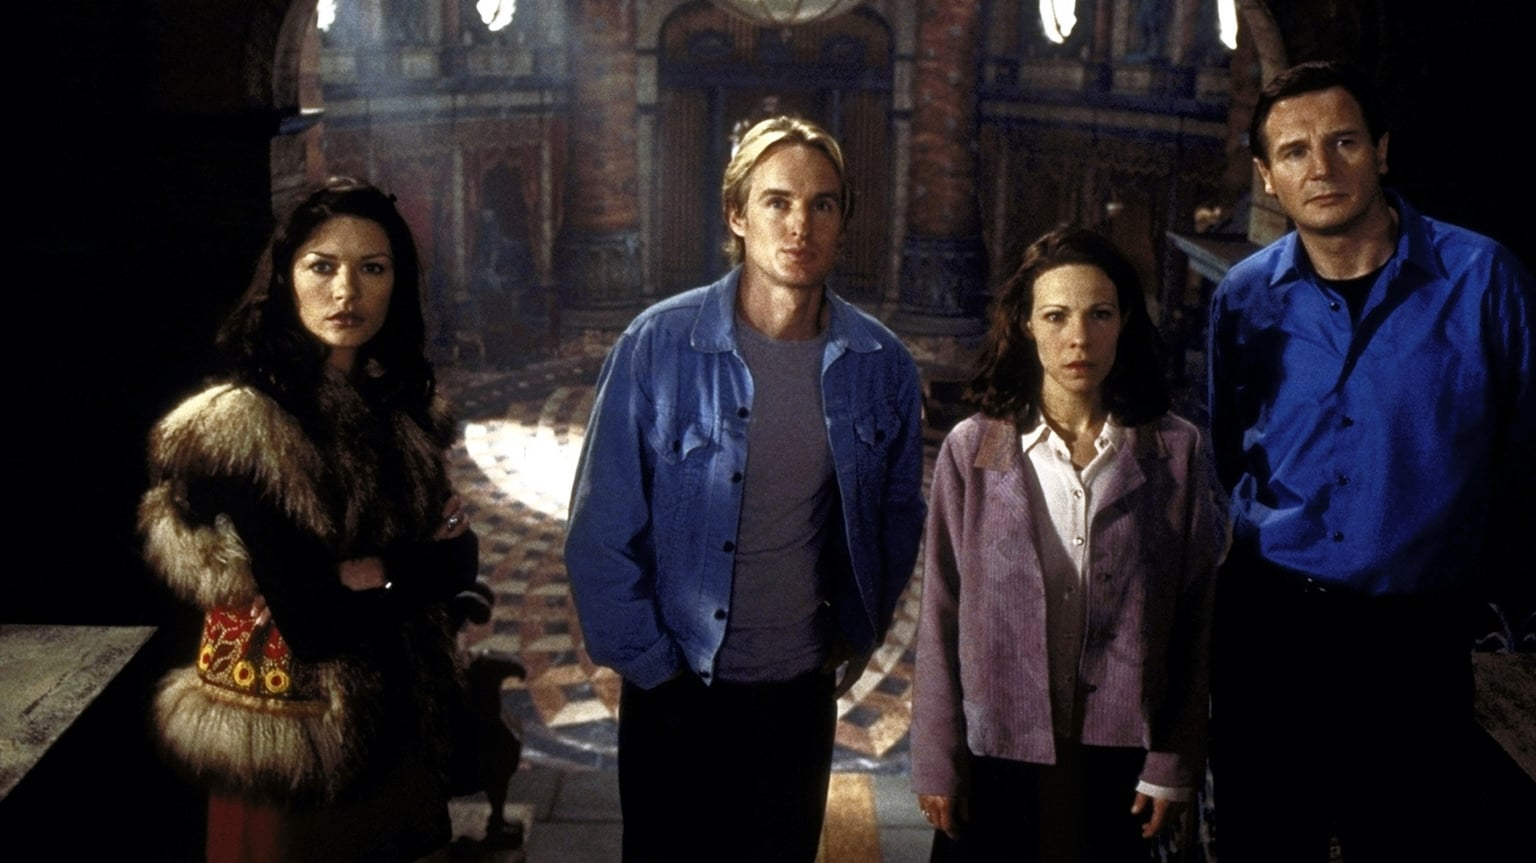 The investigatory team - Theo (Catherine Zeta-Jones), Luke Sanderson (Owen Wilson), Eleanor Vance (Lili Taylor) and Dr David Merrow (Liam Neeson) in The Haunting (1999)